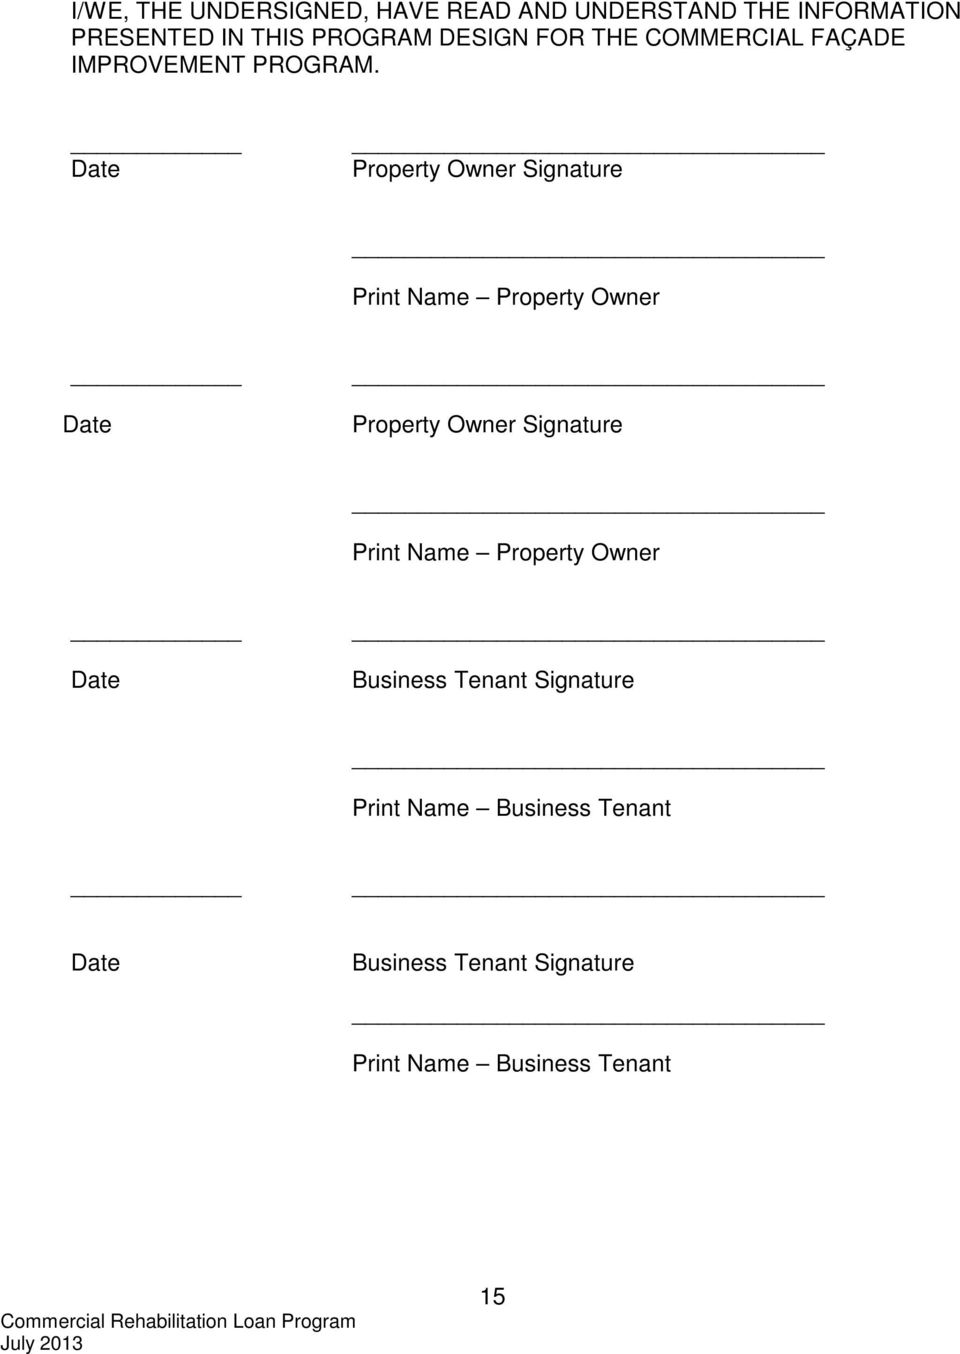 Date Property Owner Signature Print Name Property Owner Date Property Owner Signature Print